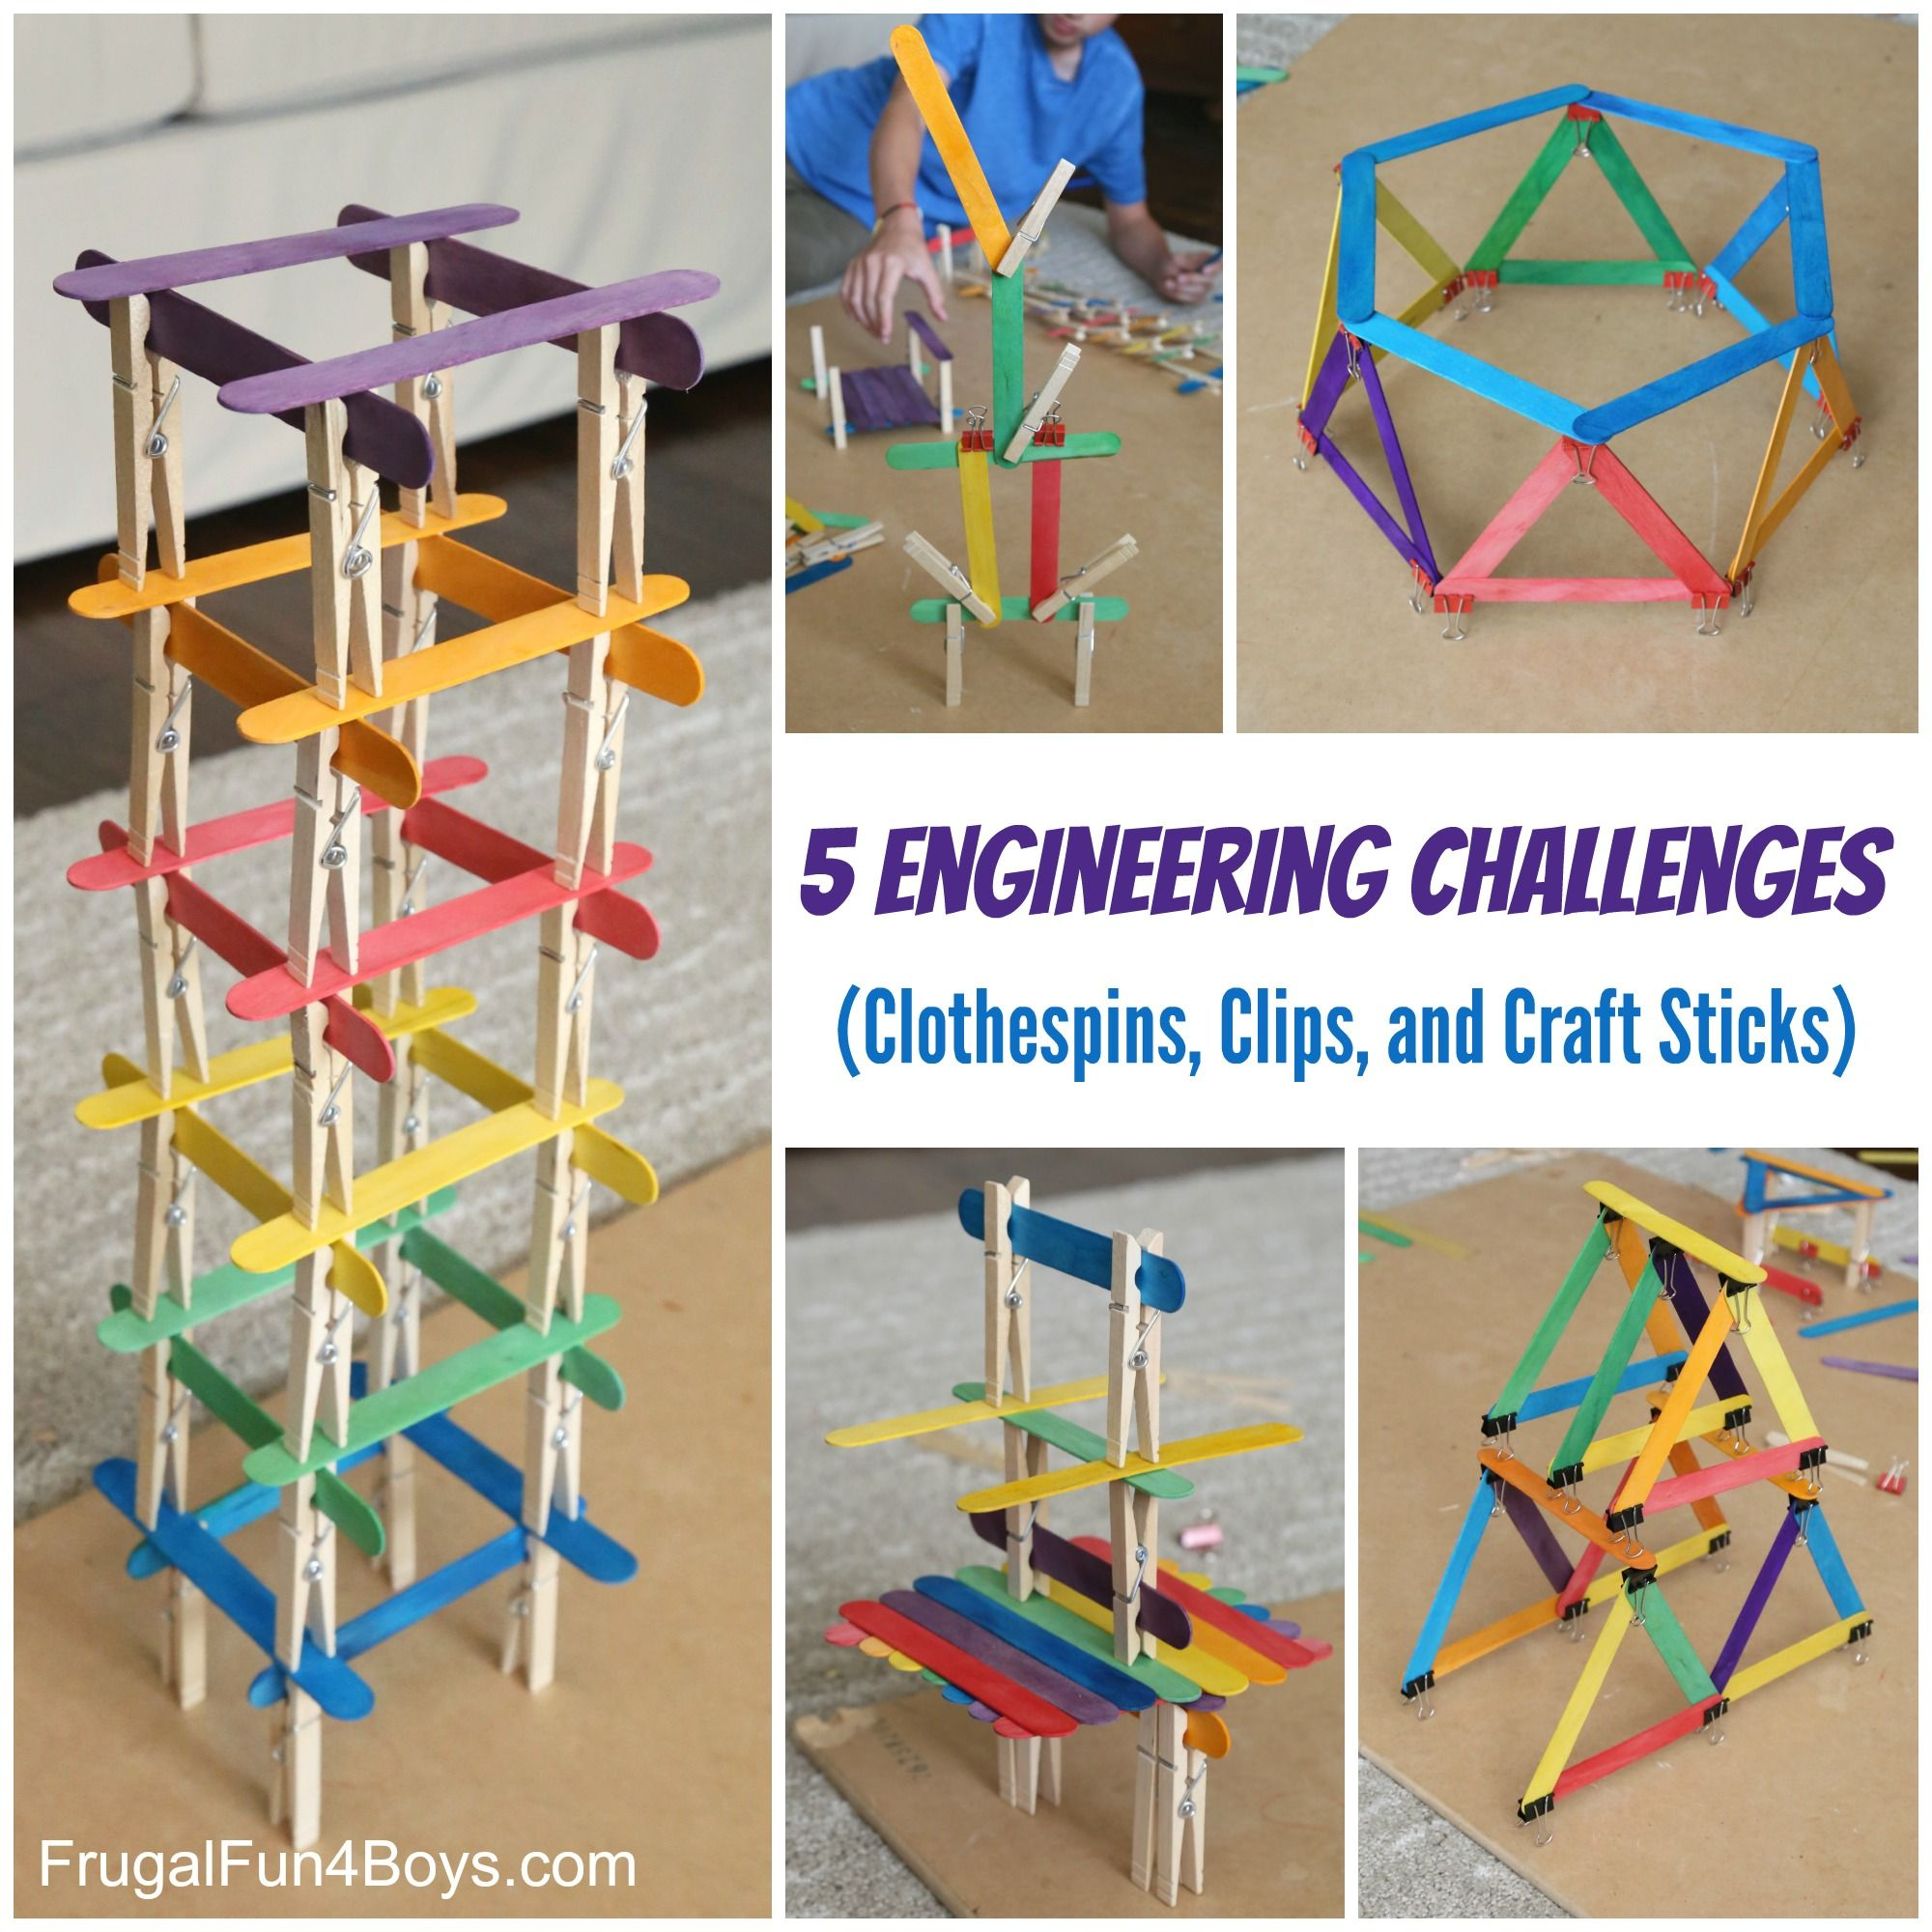 5 Engineering Challenges With Clothespins Binder Clips